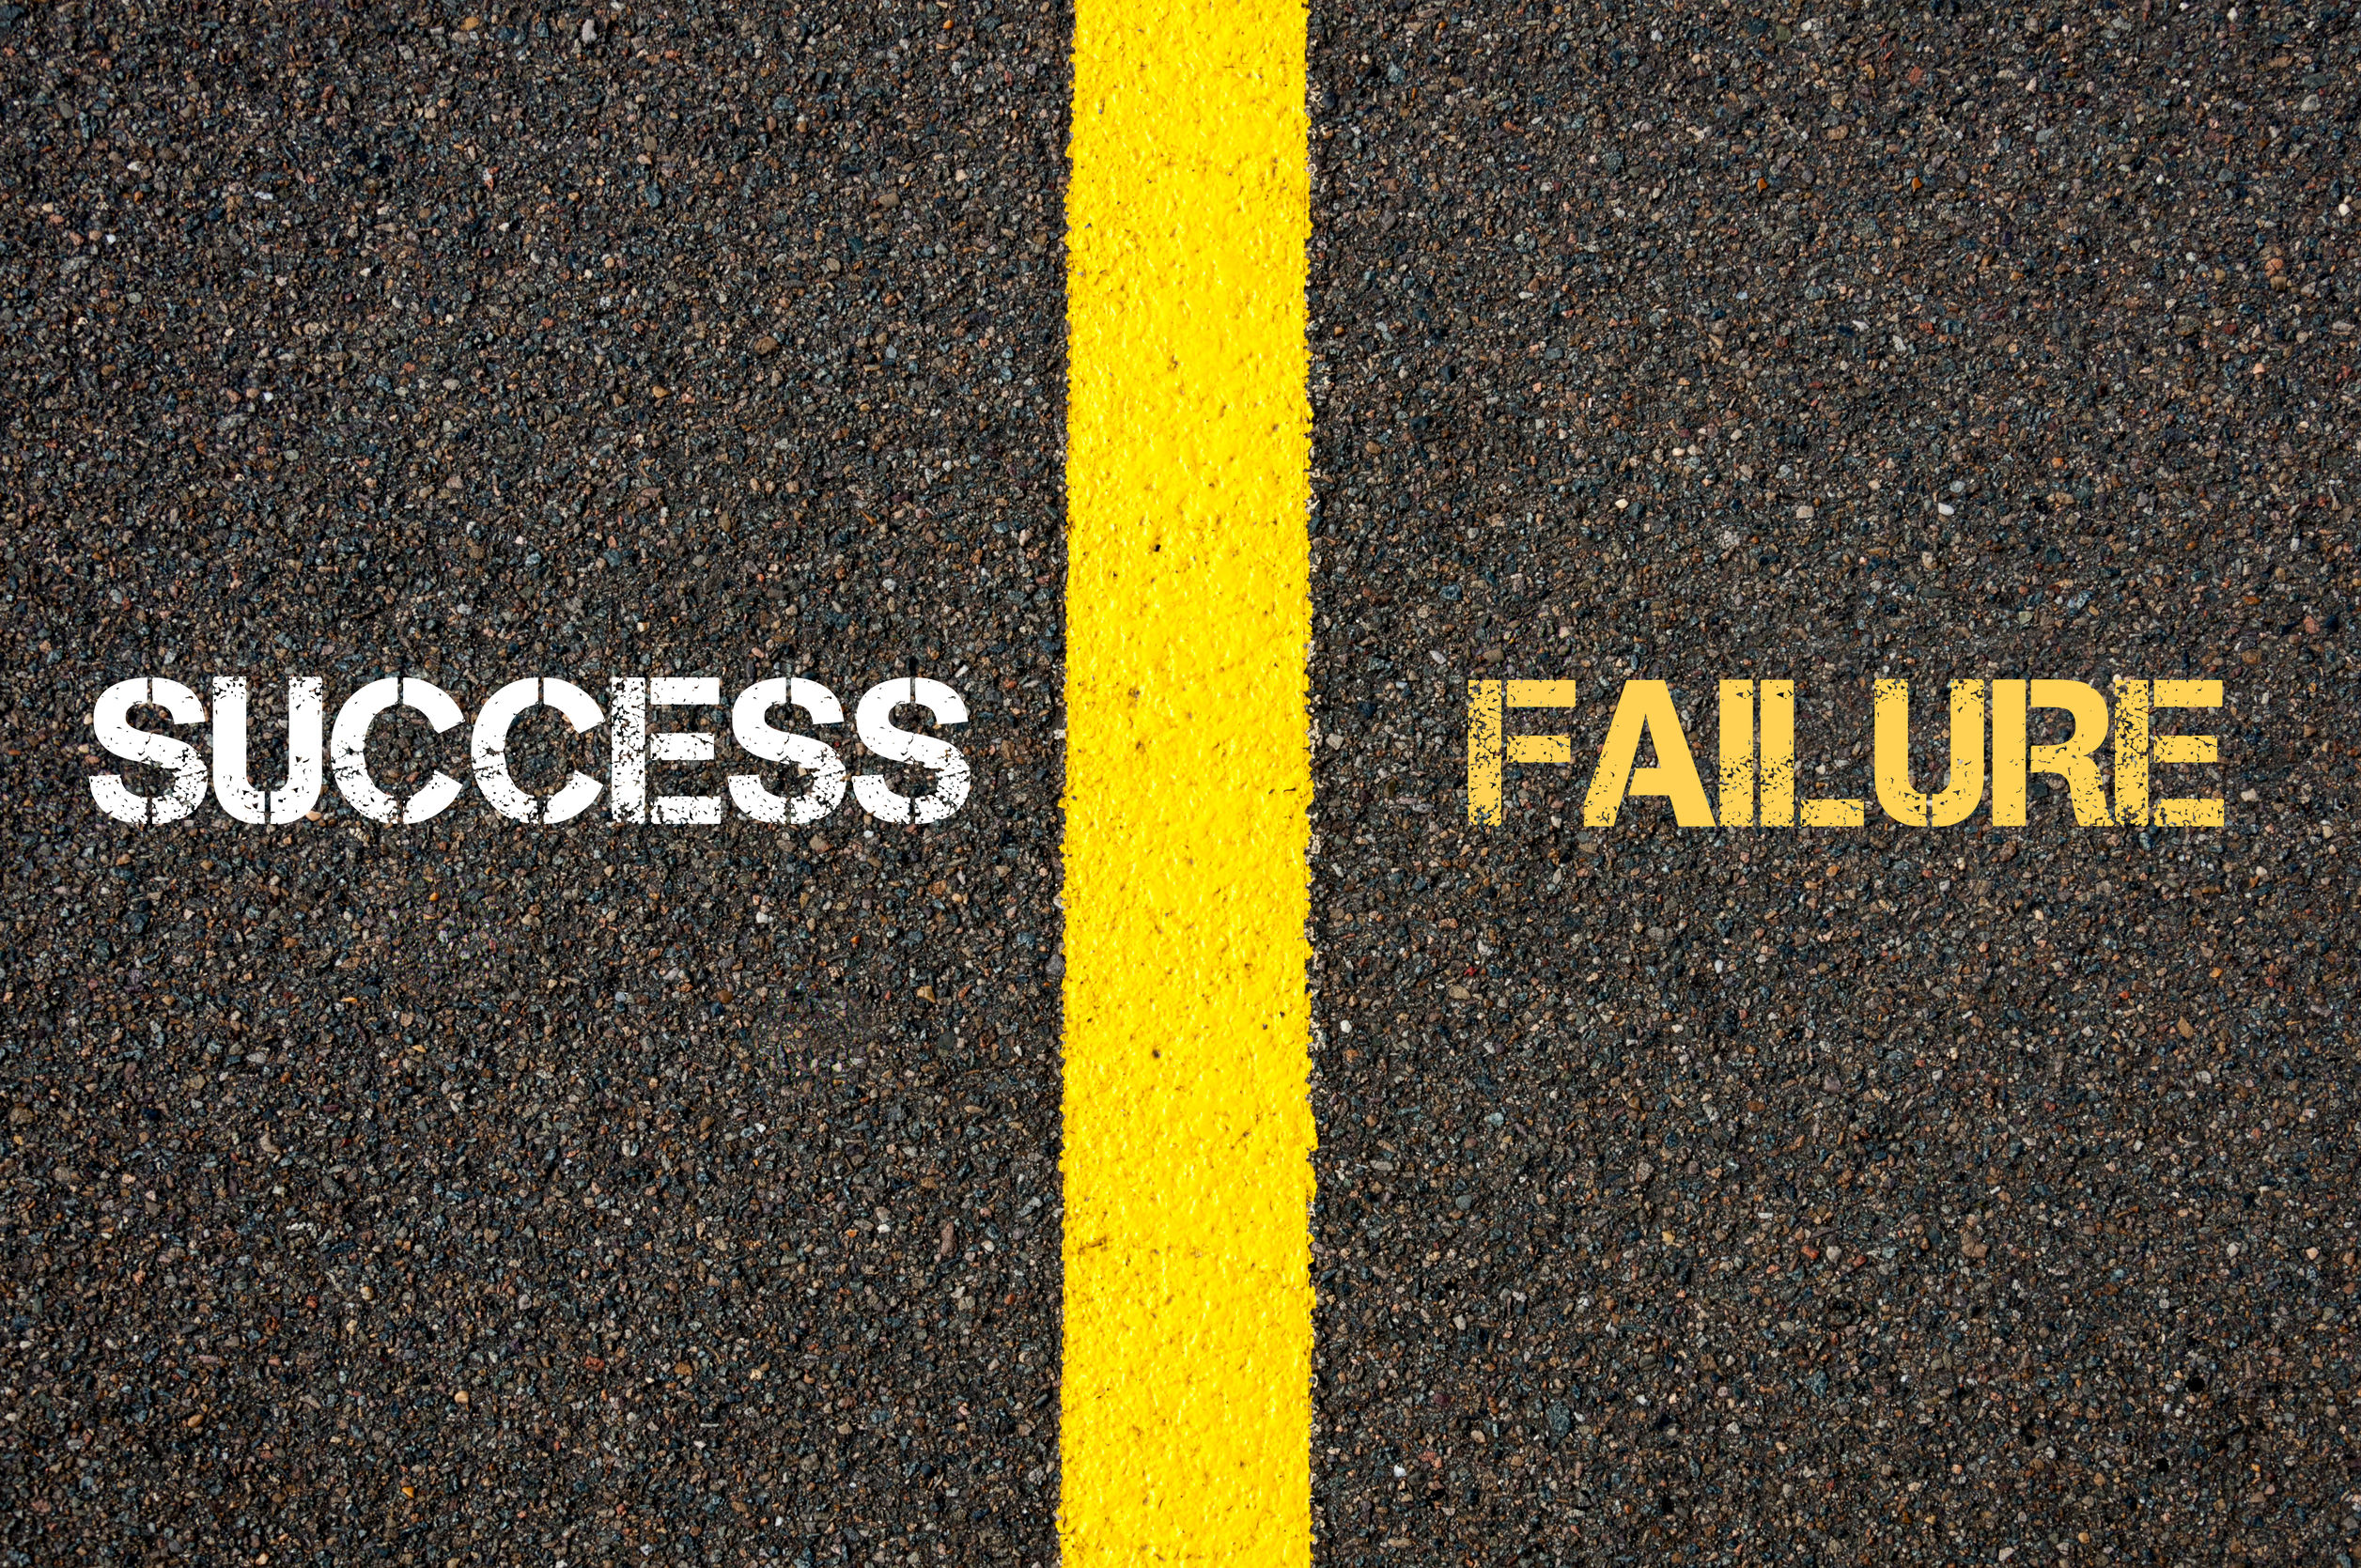 Indicating Failing Business vs. Successful Business